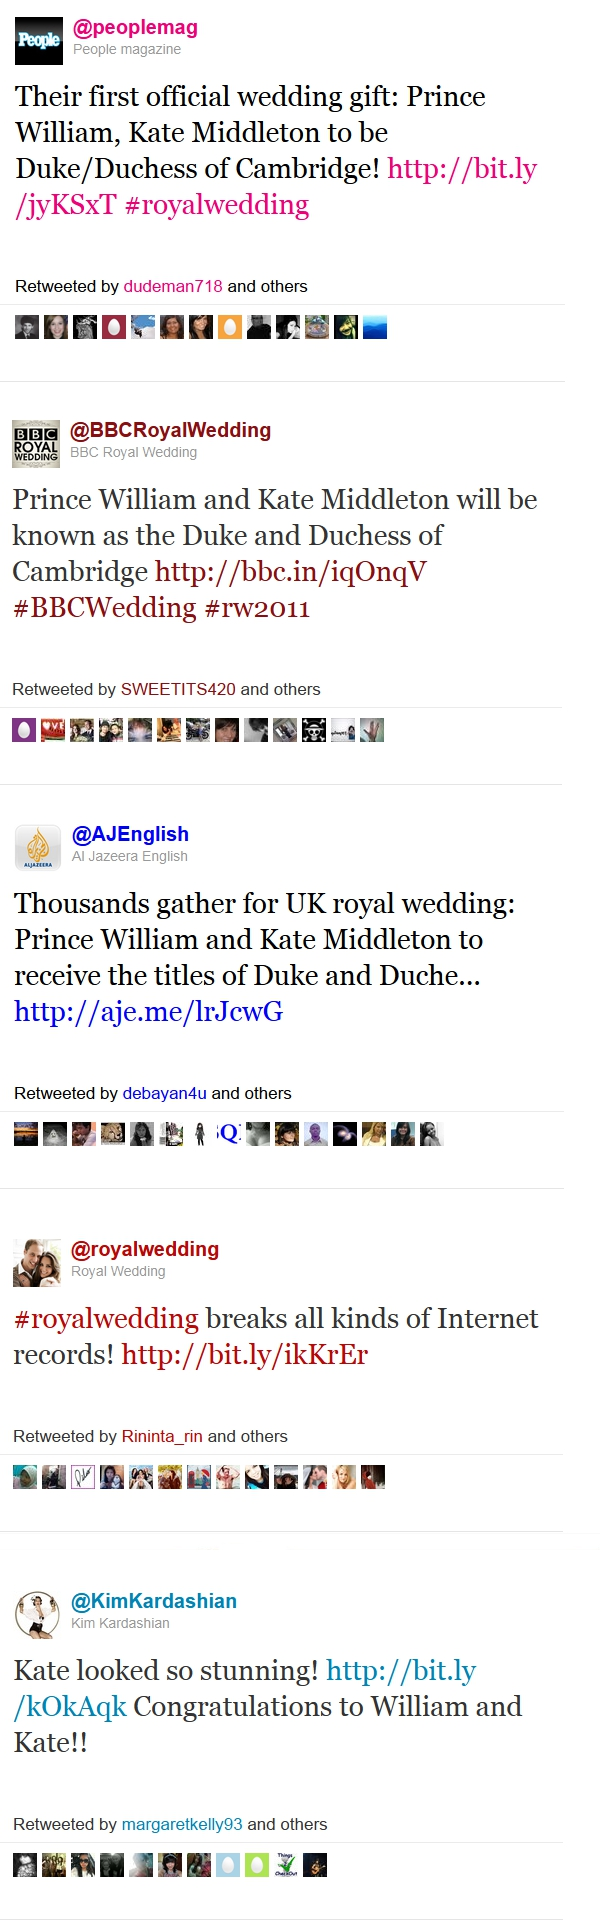 Royal Wedding Twitter Buzz - Top Tweets